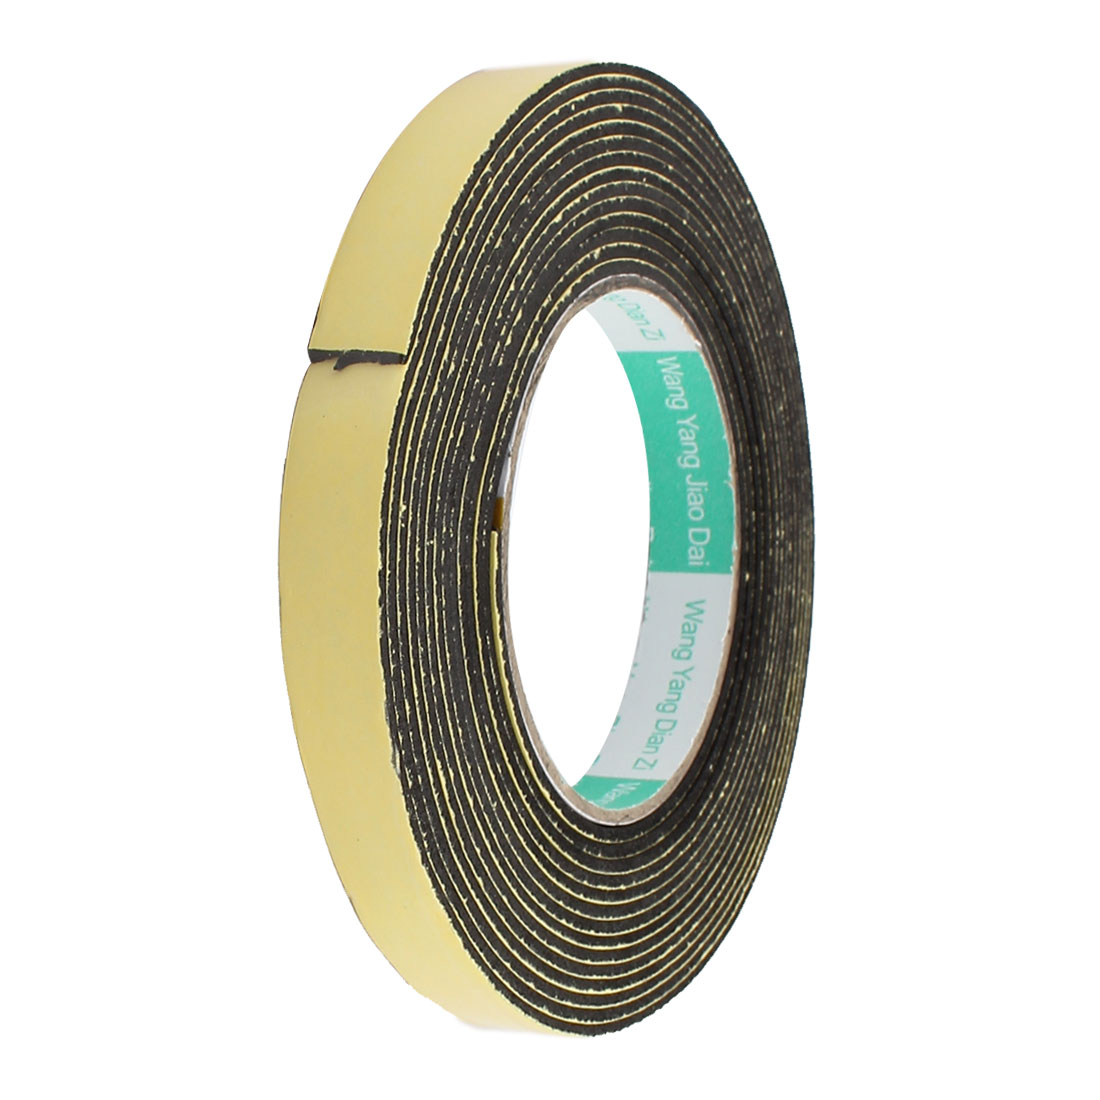 15mm Width 2mm Thick Single Sided Sealing Shockproof Sponge Tape 5m Length